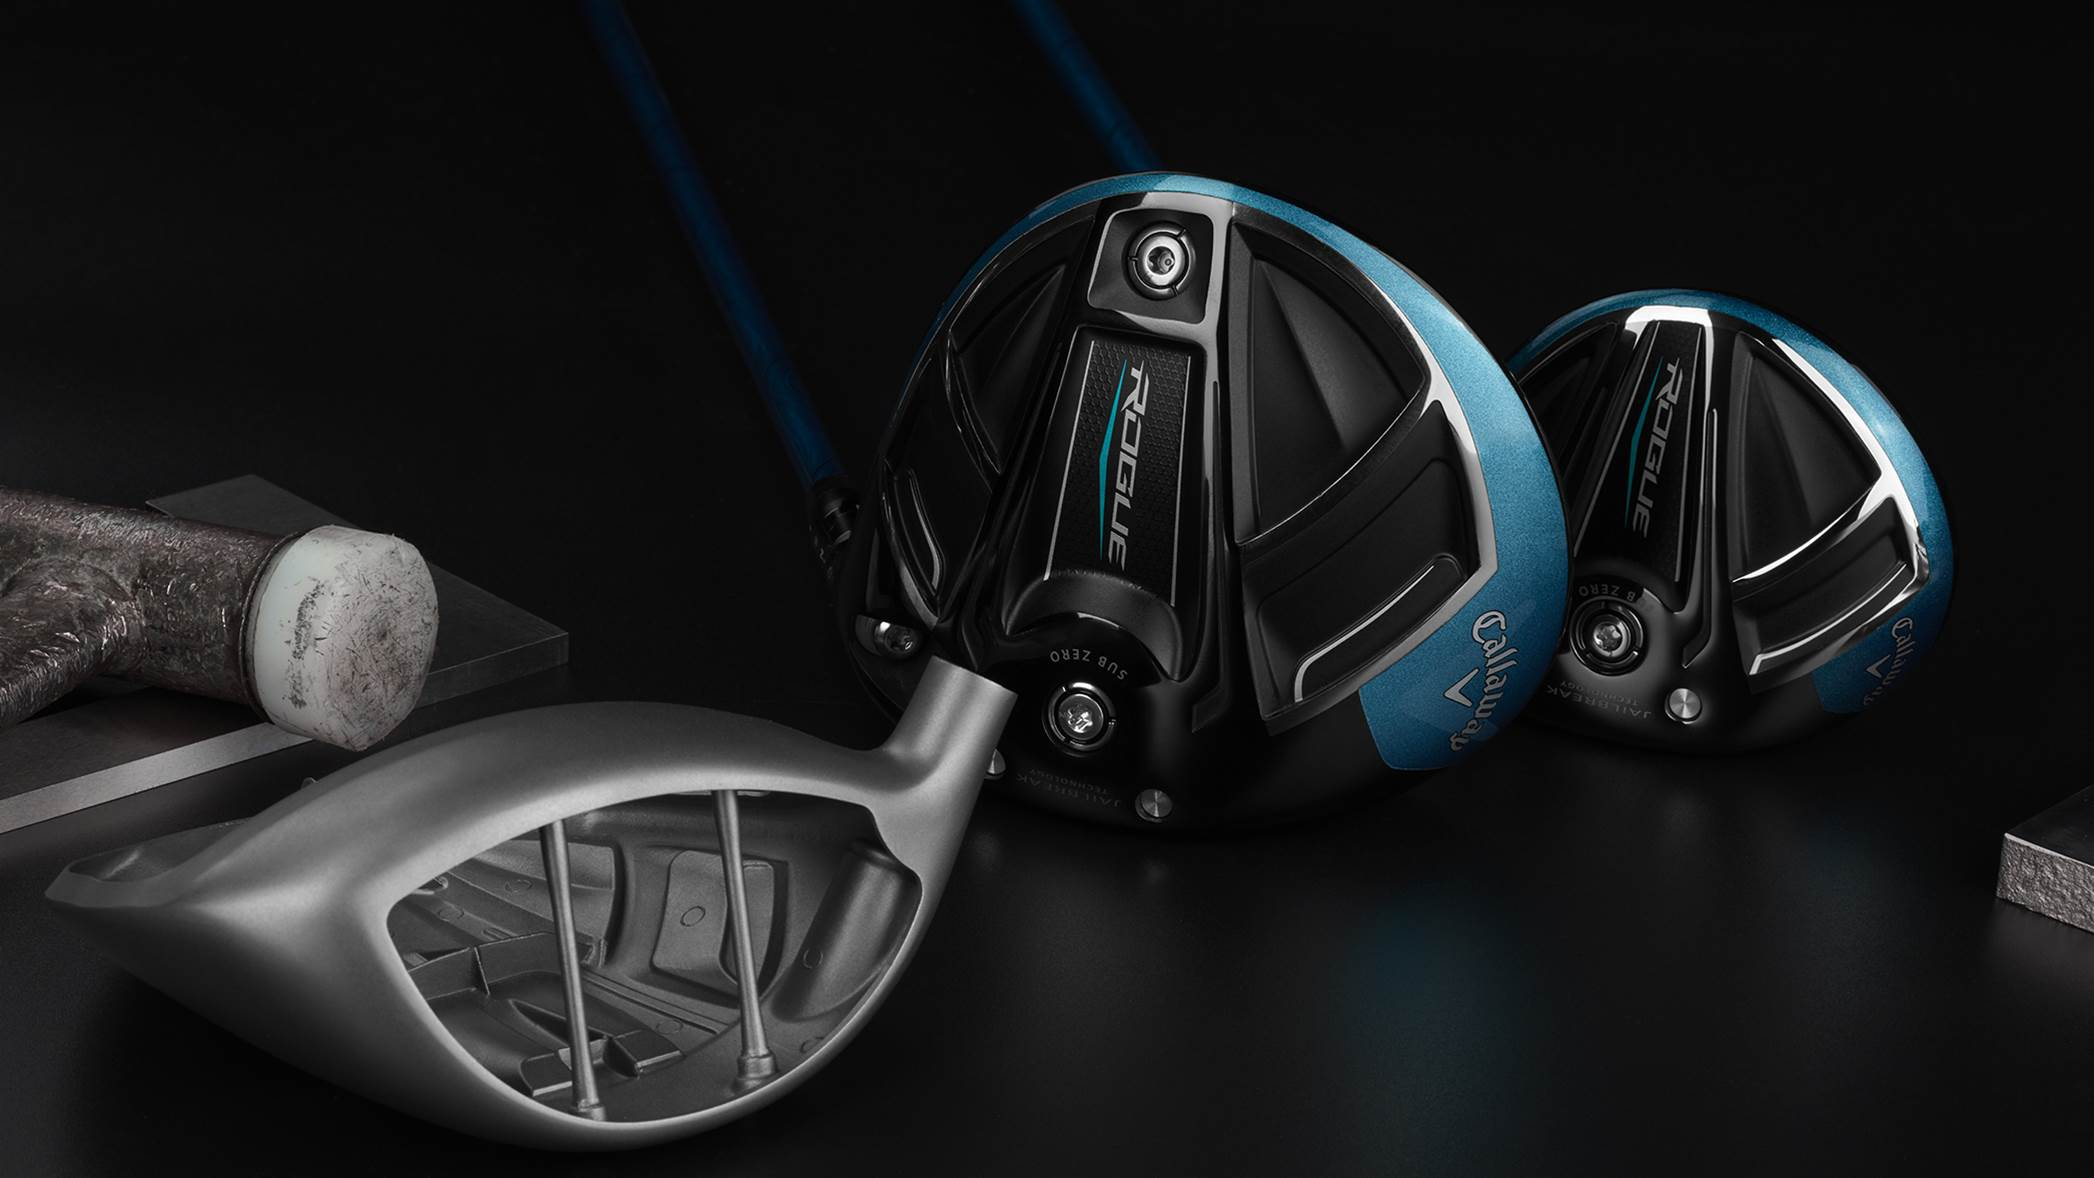 TESTED: Callaway Rogue Fairway Woods